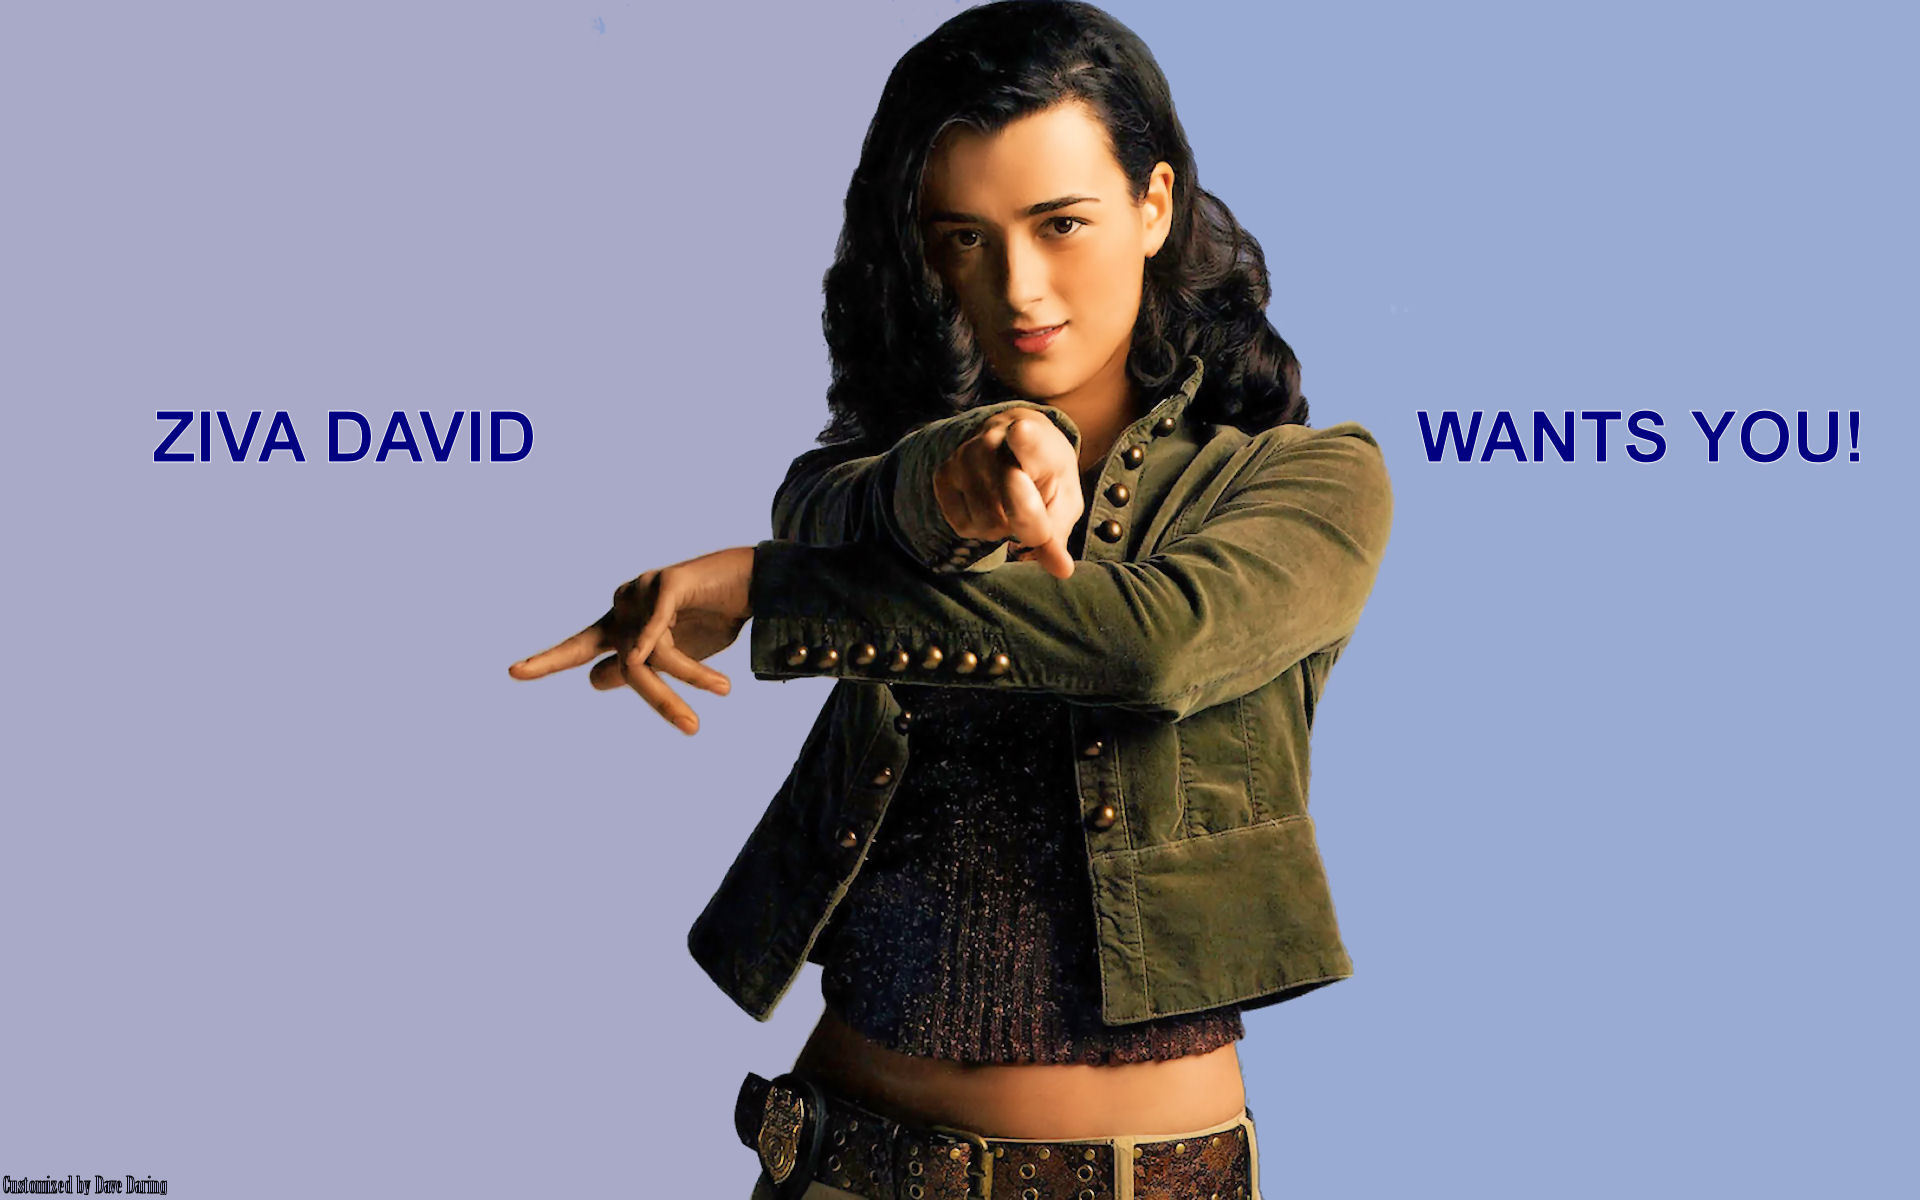 Cote De Pablo Wants You Wallpaper Cote De Pablo Wallpaper